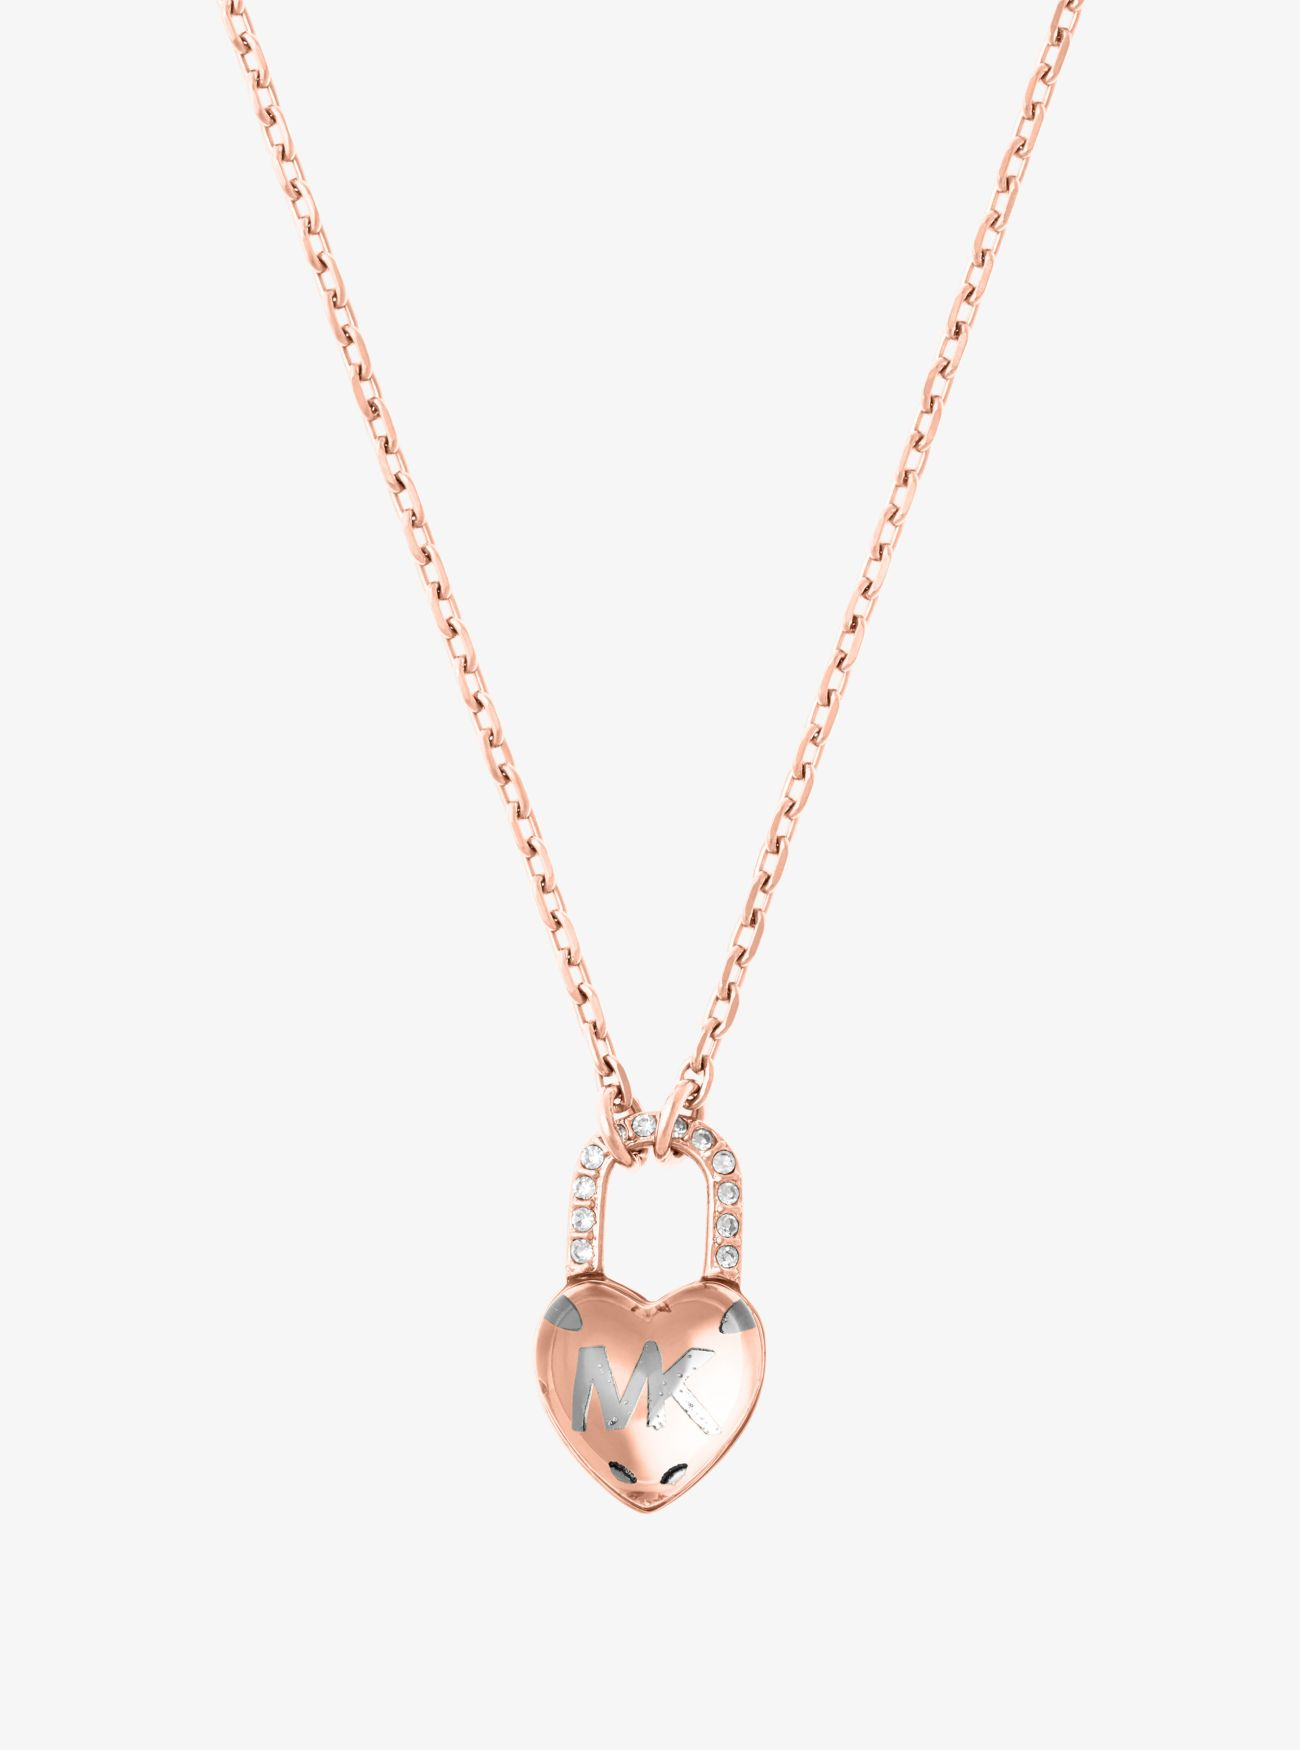 johnlewis necklace personalised heart ibb at main buyibb john rsp lewis com sterling mini silver online pdp